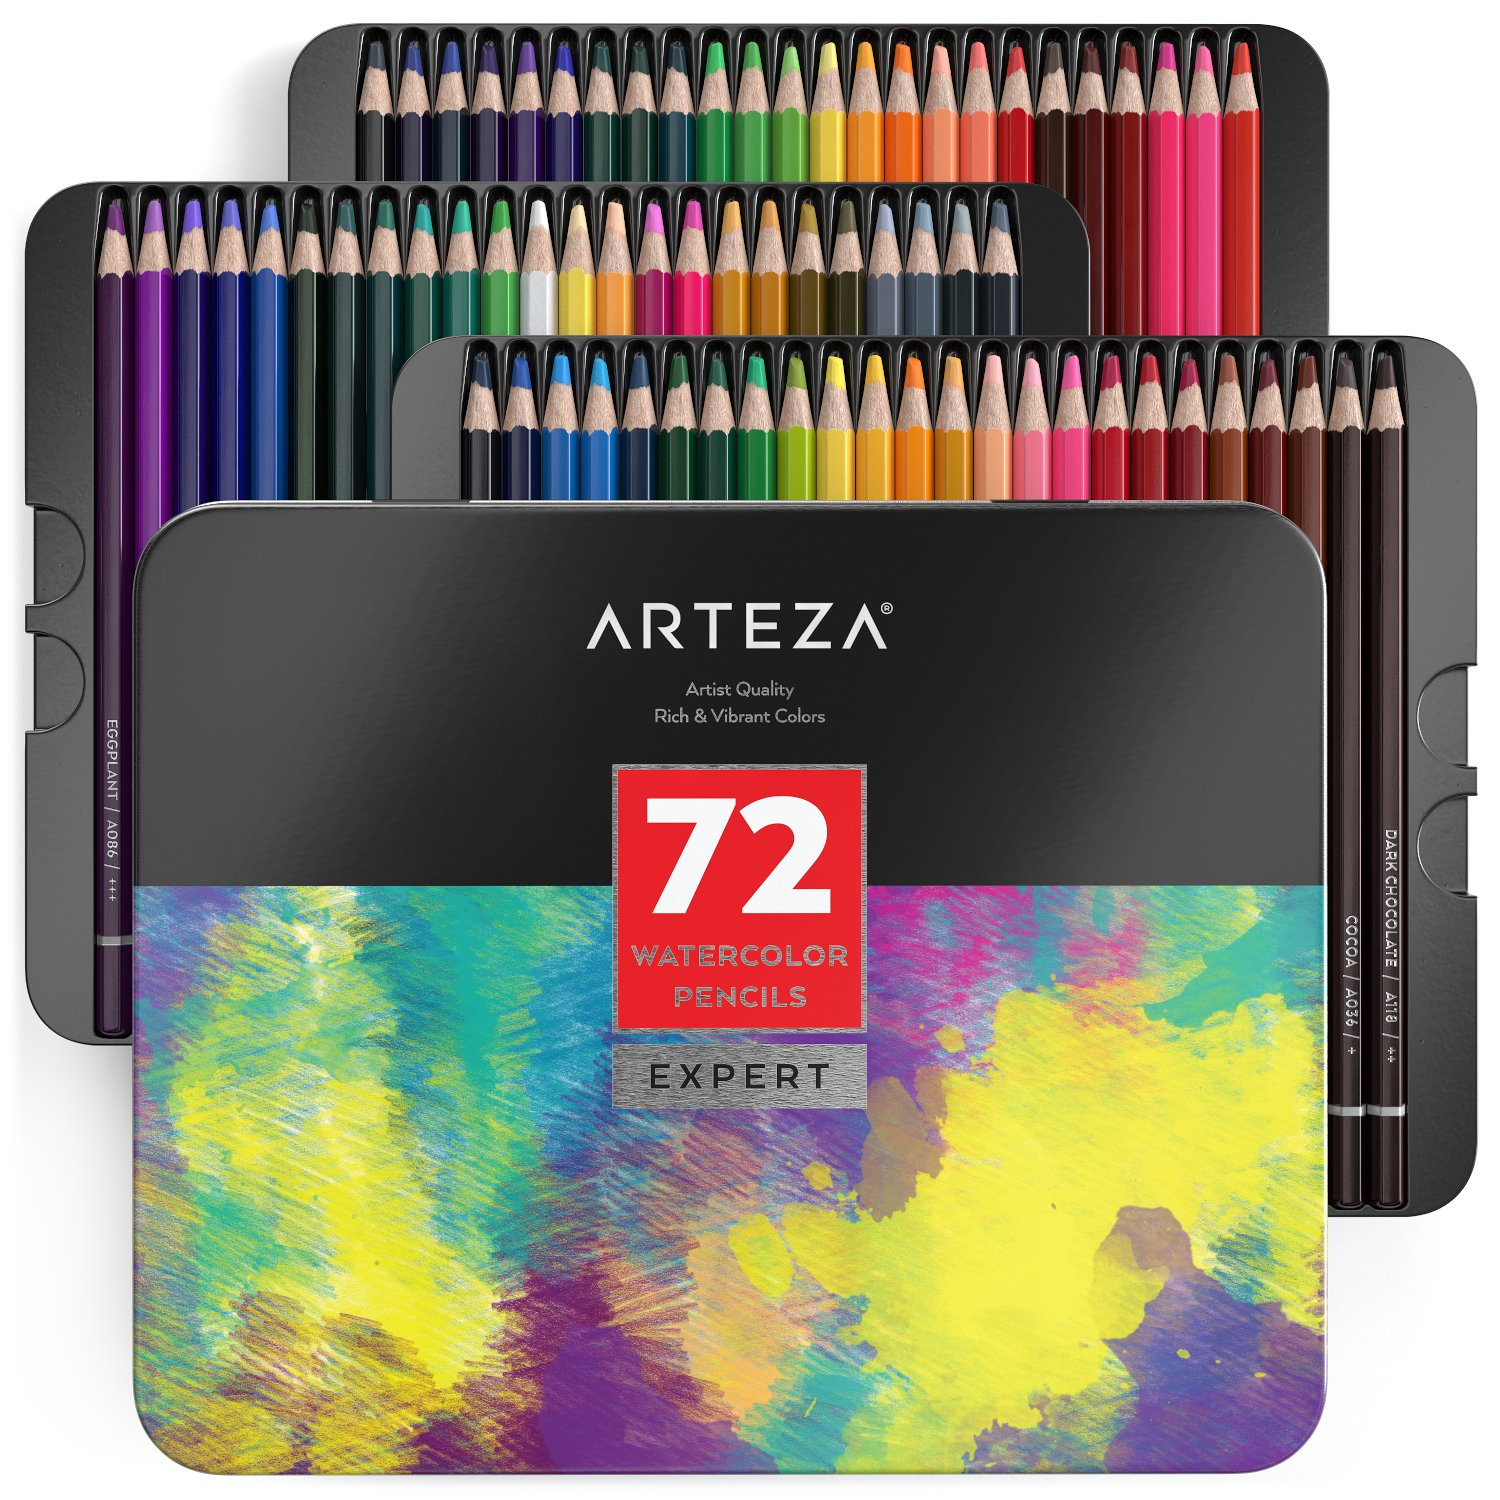 ARTEZA Professional Watercolor Pencils, Set of 72, Multi Colored Art Drawing Pencils in Bright Assorted Shades, Ideal for Coloring, Blending and Layering, Watercolor Techniques by ARTEZA